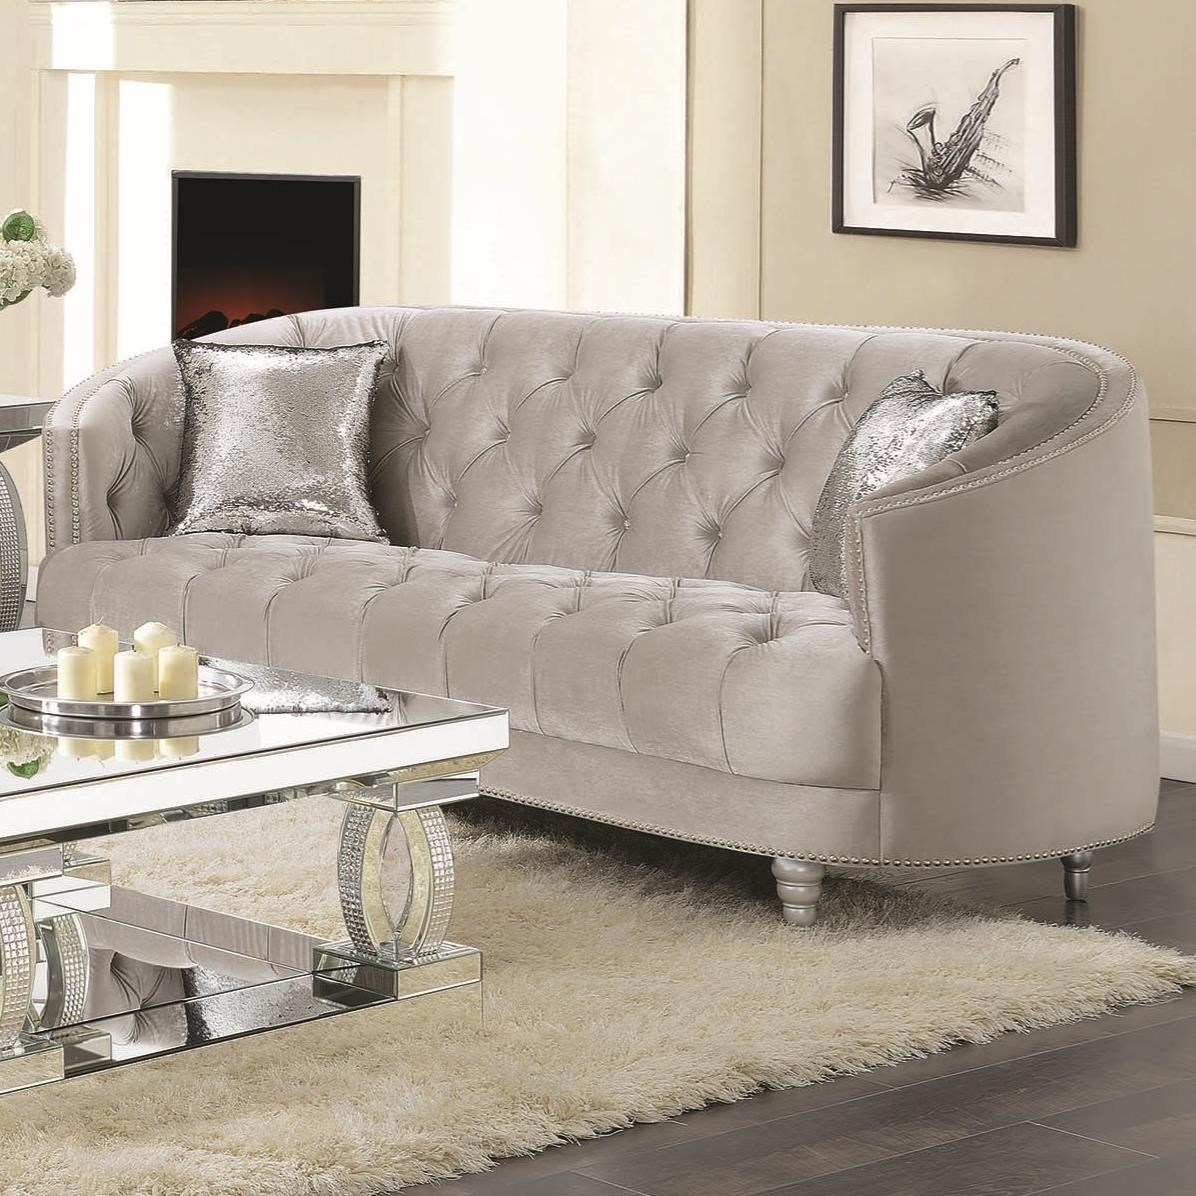 Avonlea Sofa by Coaster at Furniture Superstore - Rochester, MN